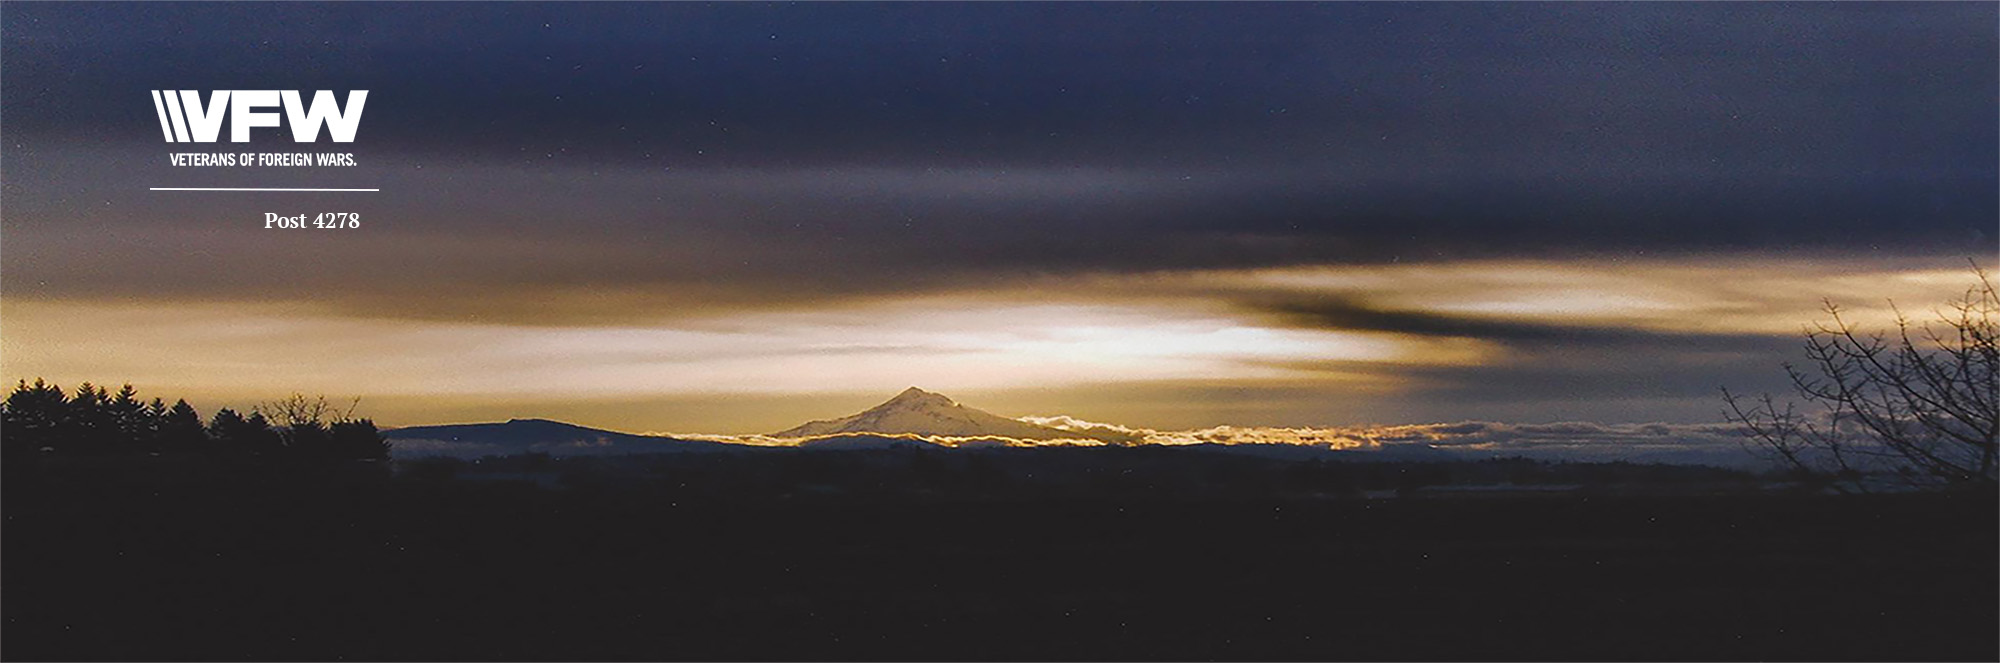 Photo of Mt. Hood in the Distance